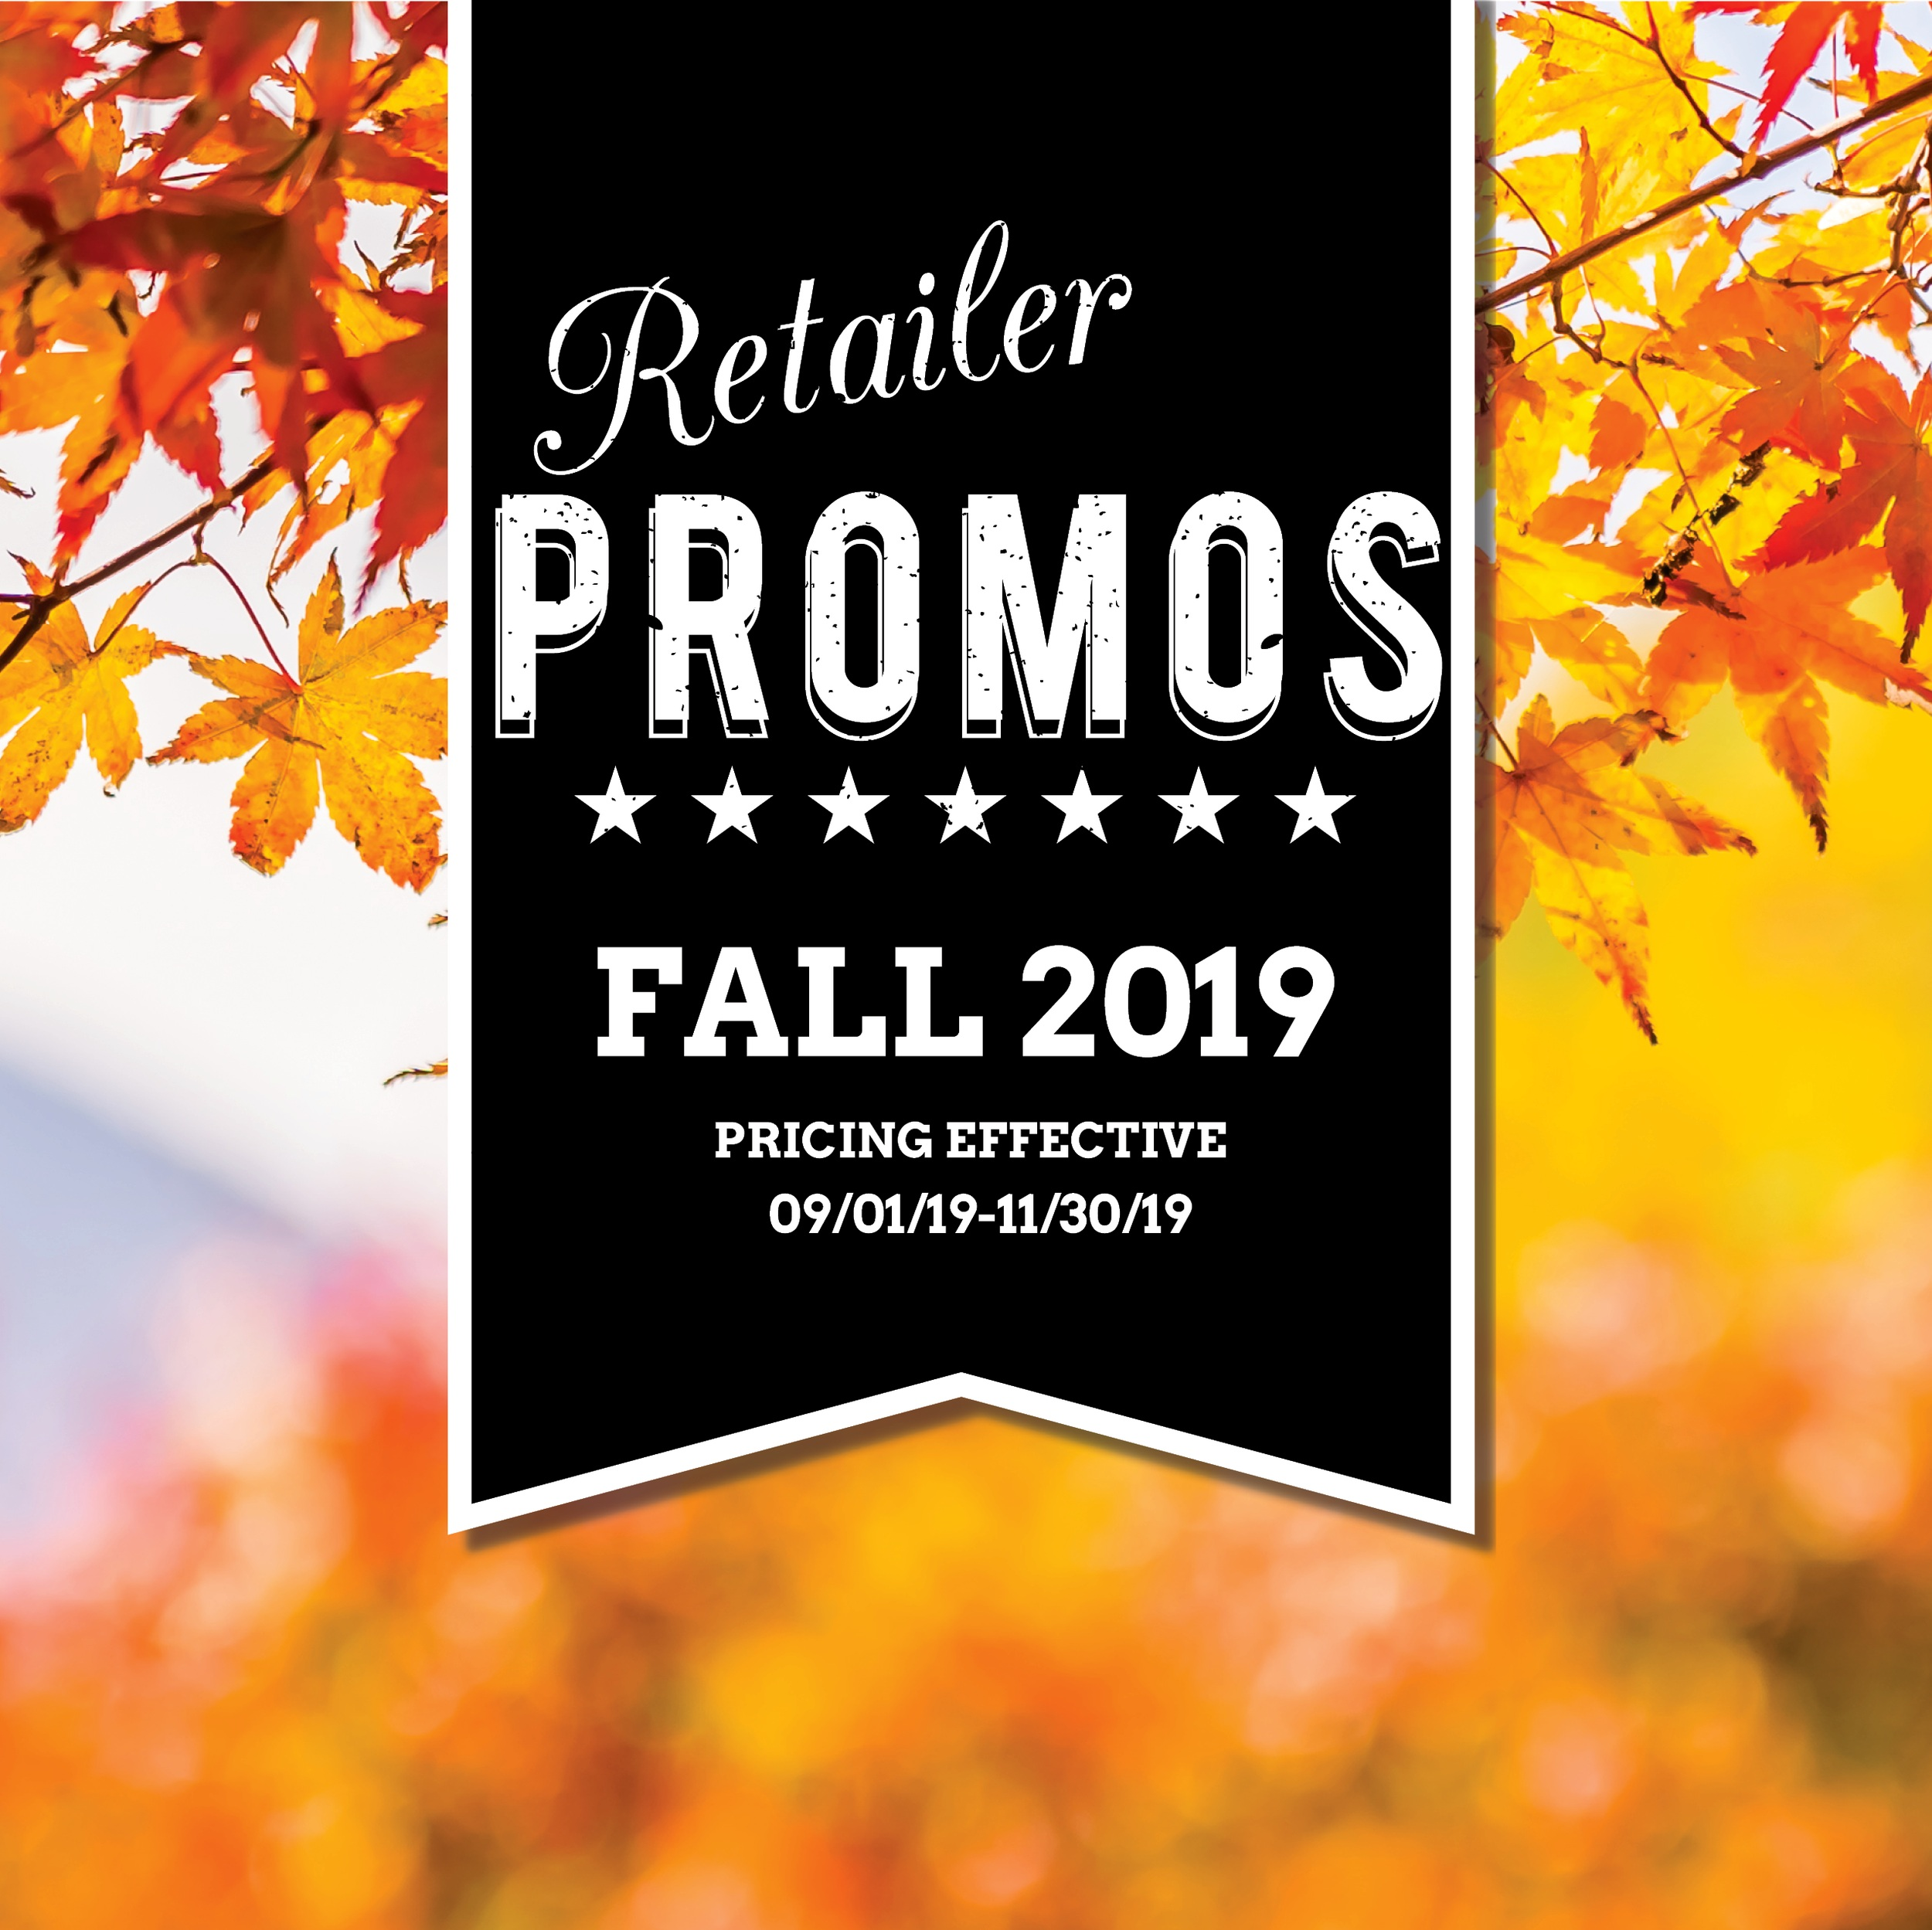 Product Promotions - We offer many of the best promotions in the industry. From manufacturer SPIFFS to seasonal price promotions, we offer our customer great deals year round. Click below to learn more